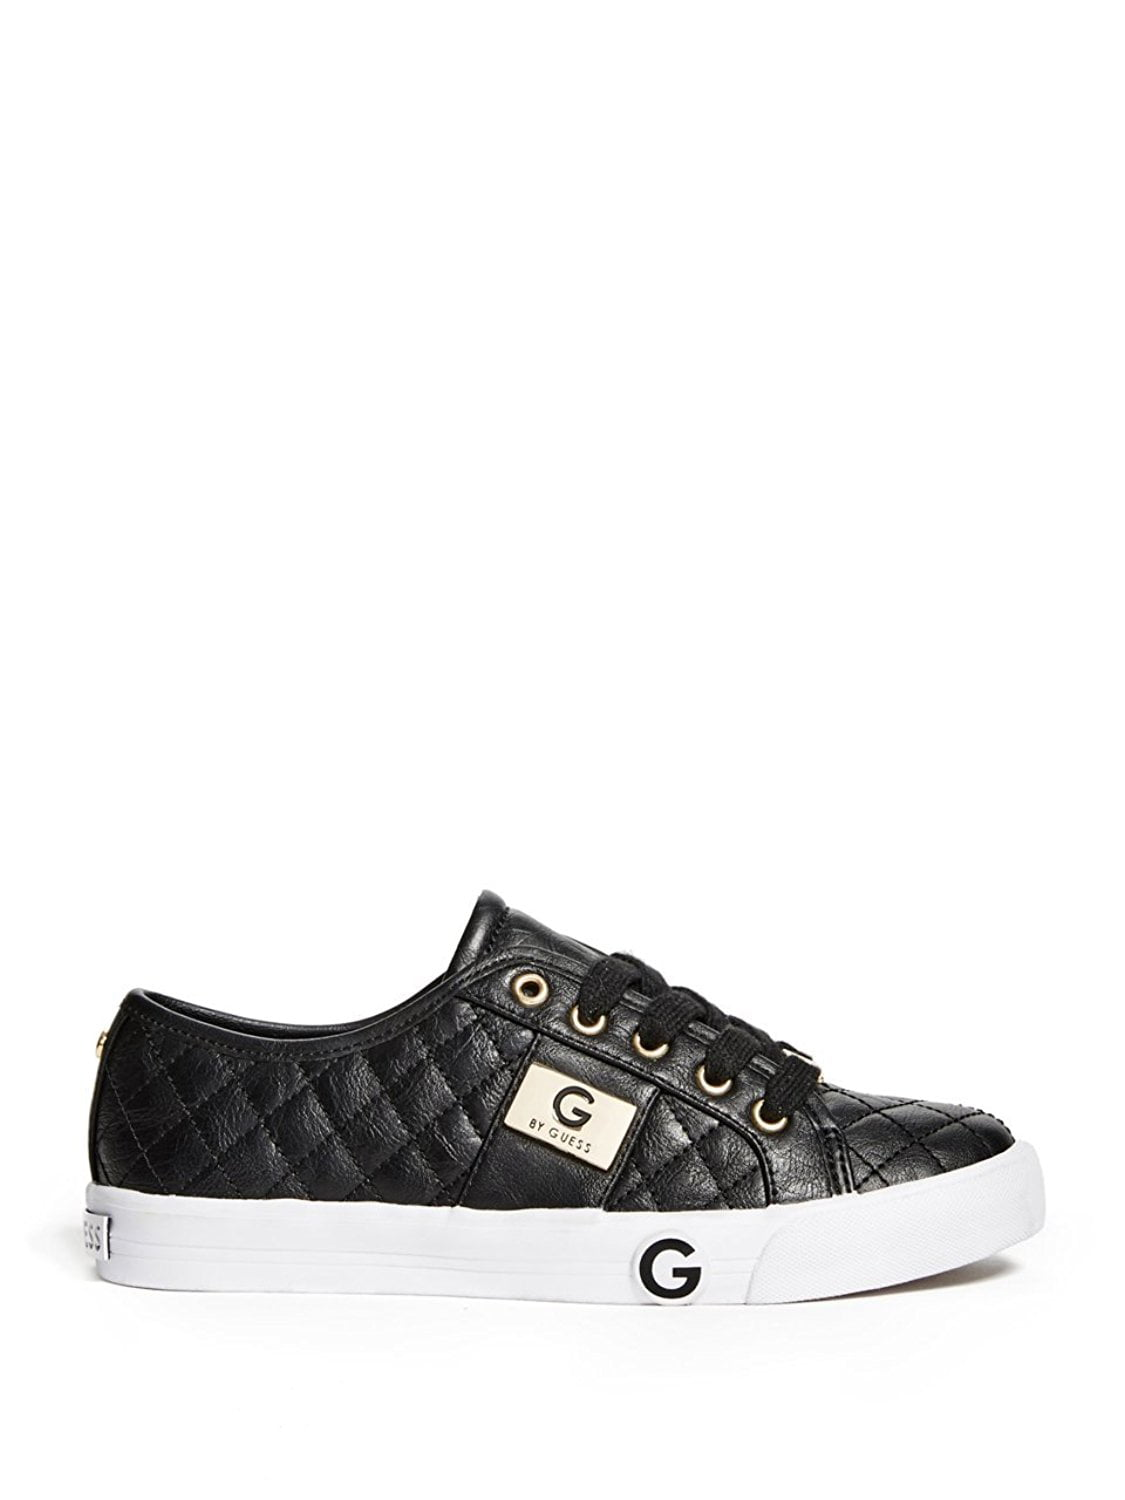 G by Guess Womens Byrone2 Low Top Lace